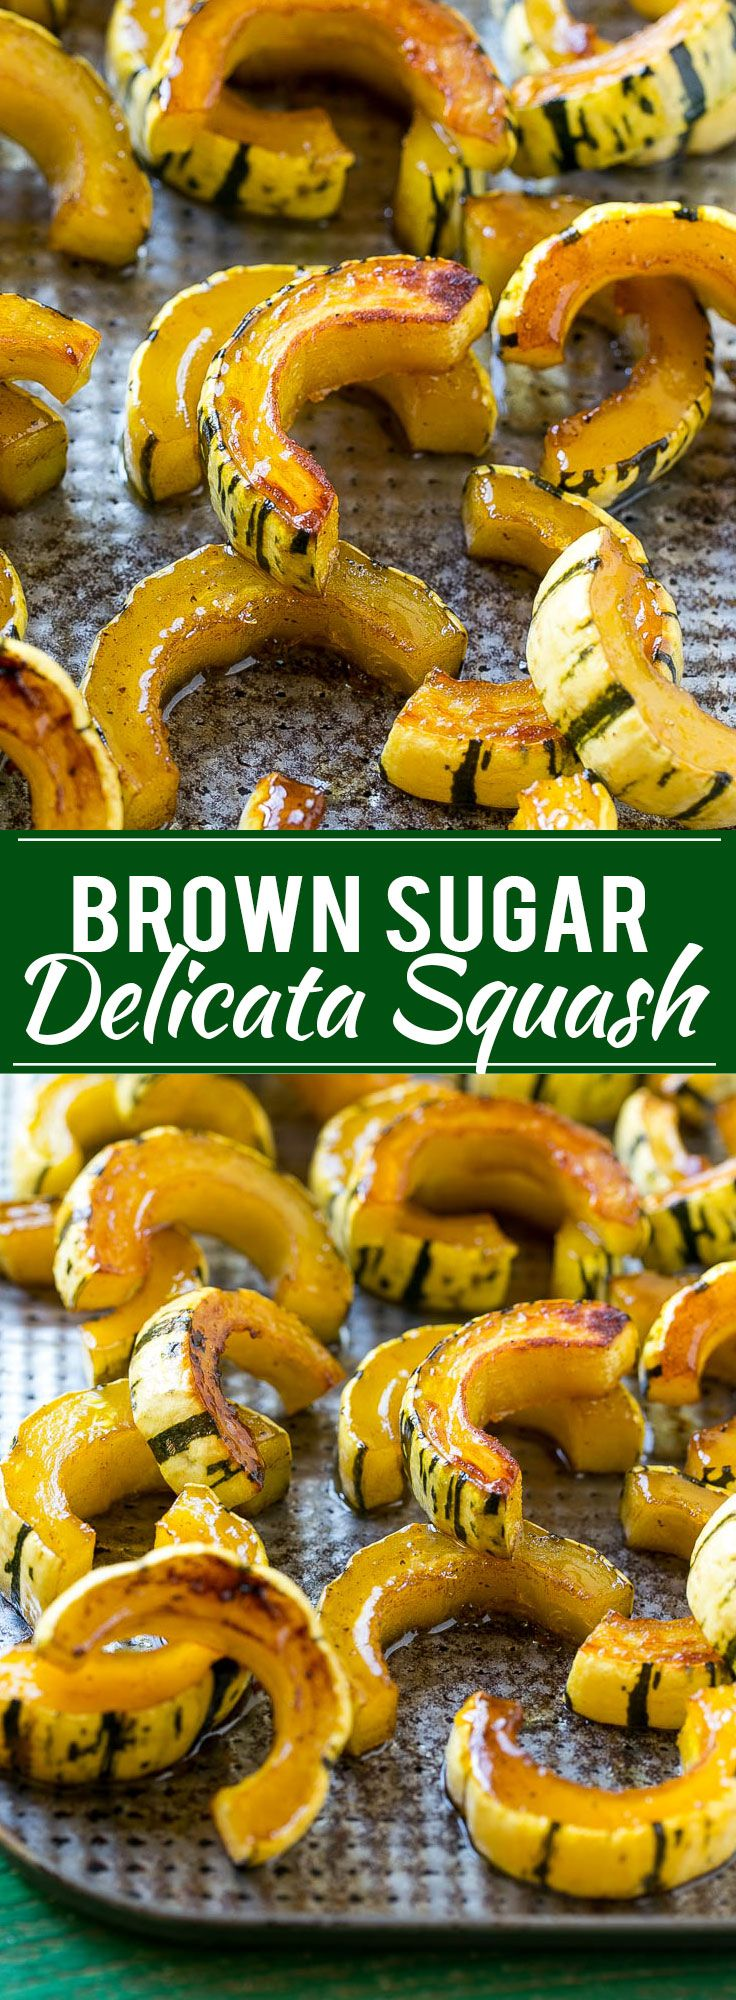 This delicata squash recipe is roasted with brown sugar, maple syrup and cinnamon for a sweet and savory side that's perfect for fall and winter meals.